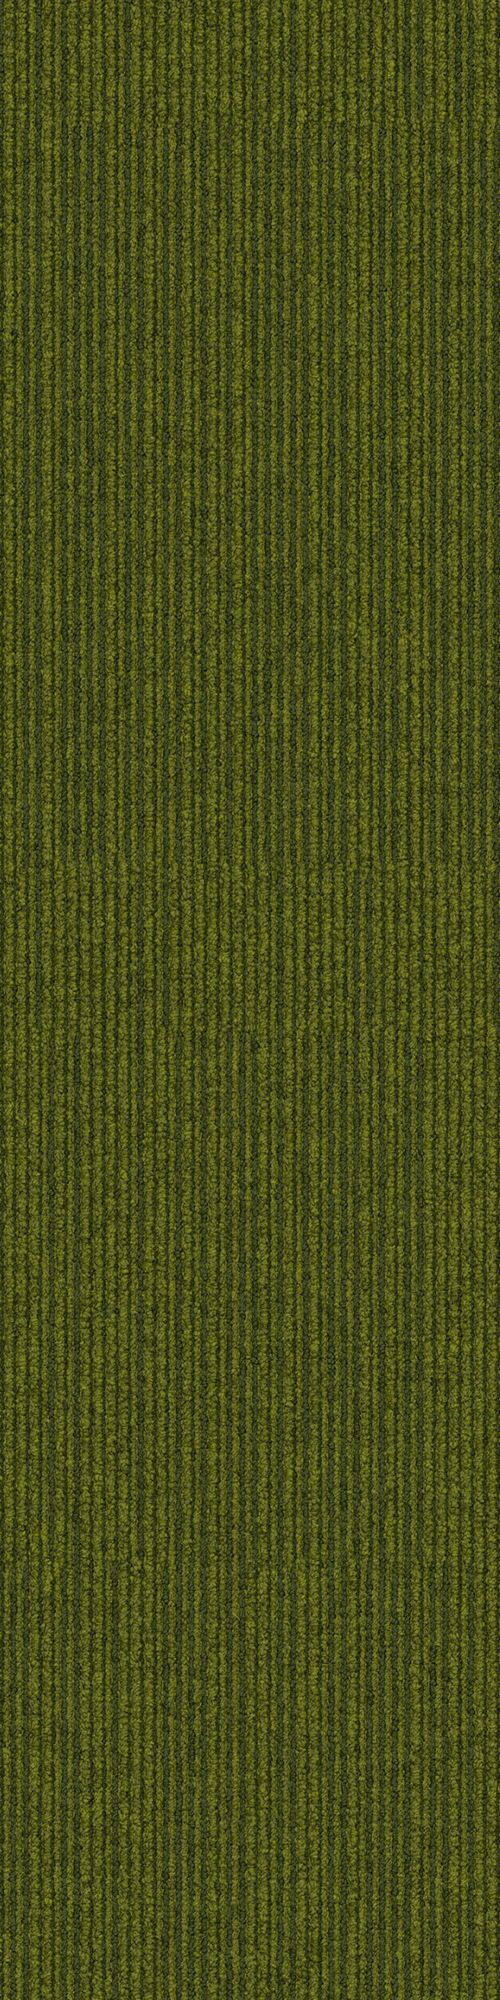 Interface carpet tile: On Line Color name: Grass